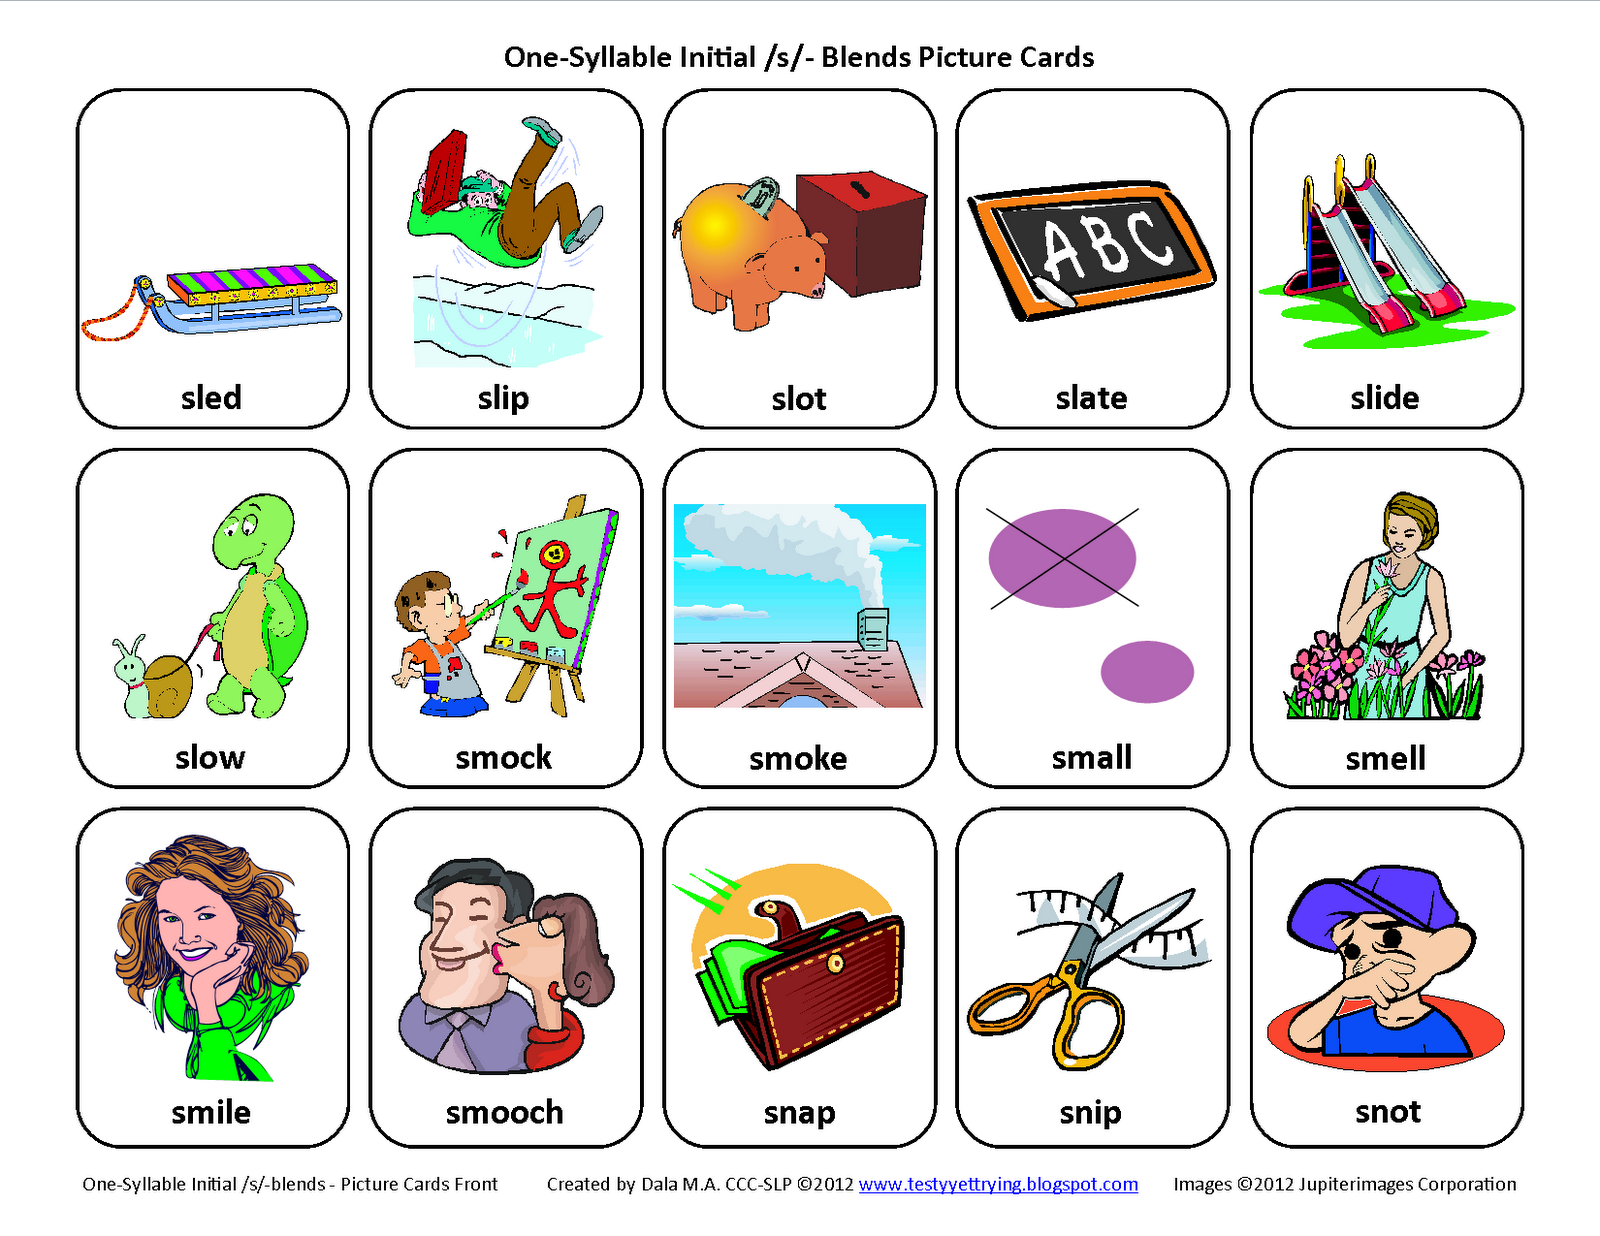 Worksheets L Blends Worksheets 109 best speech blends images on pinterest articulation if you like this free s set might want to check out the comprehensive therapy kit now available in testy s